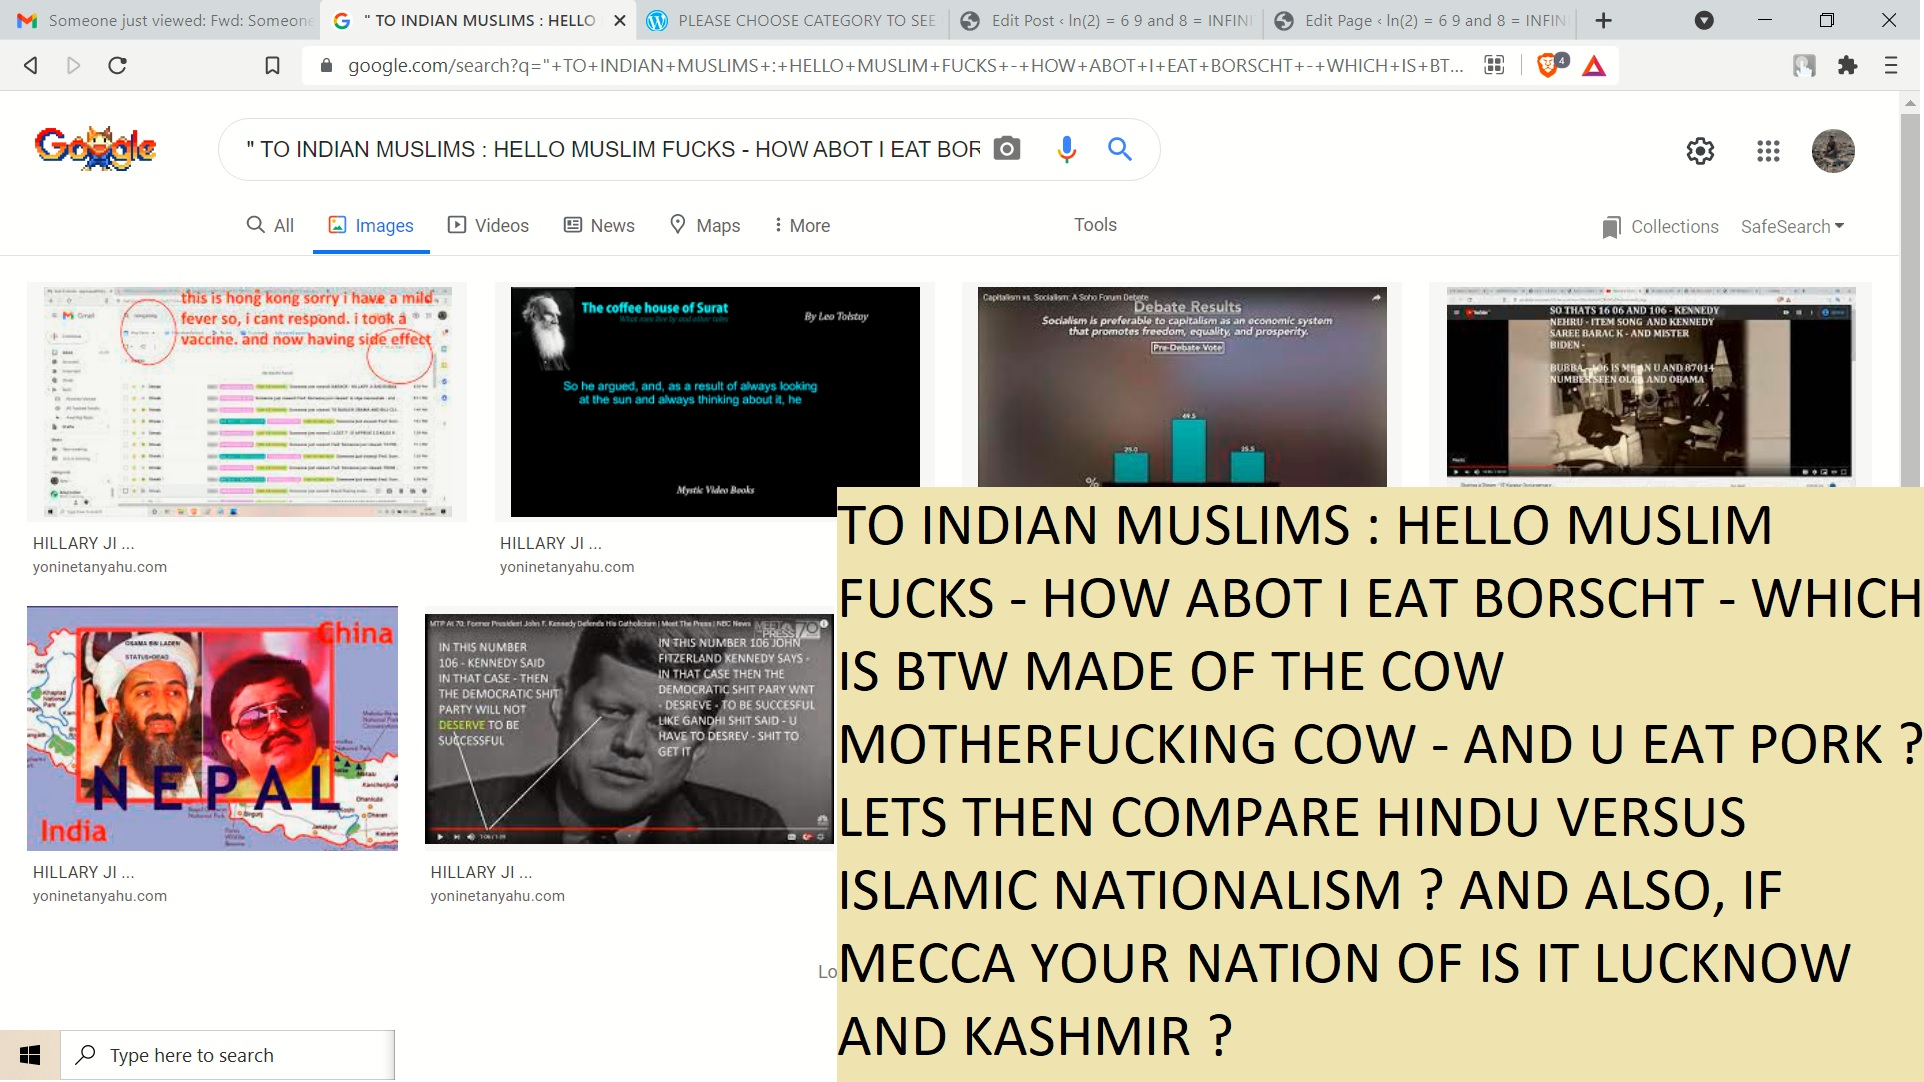 TO INDIAN MUSLIMS BORSCHT AND PORK HINDU AND MUSLIM NATIONALISM COMPARISION